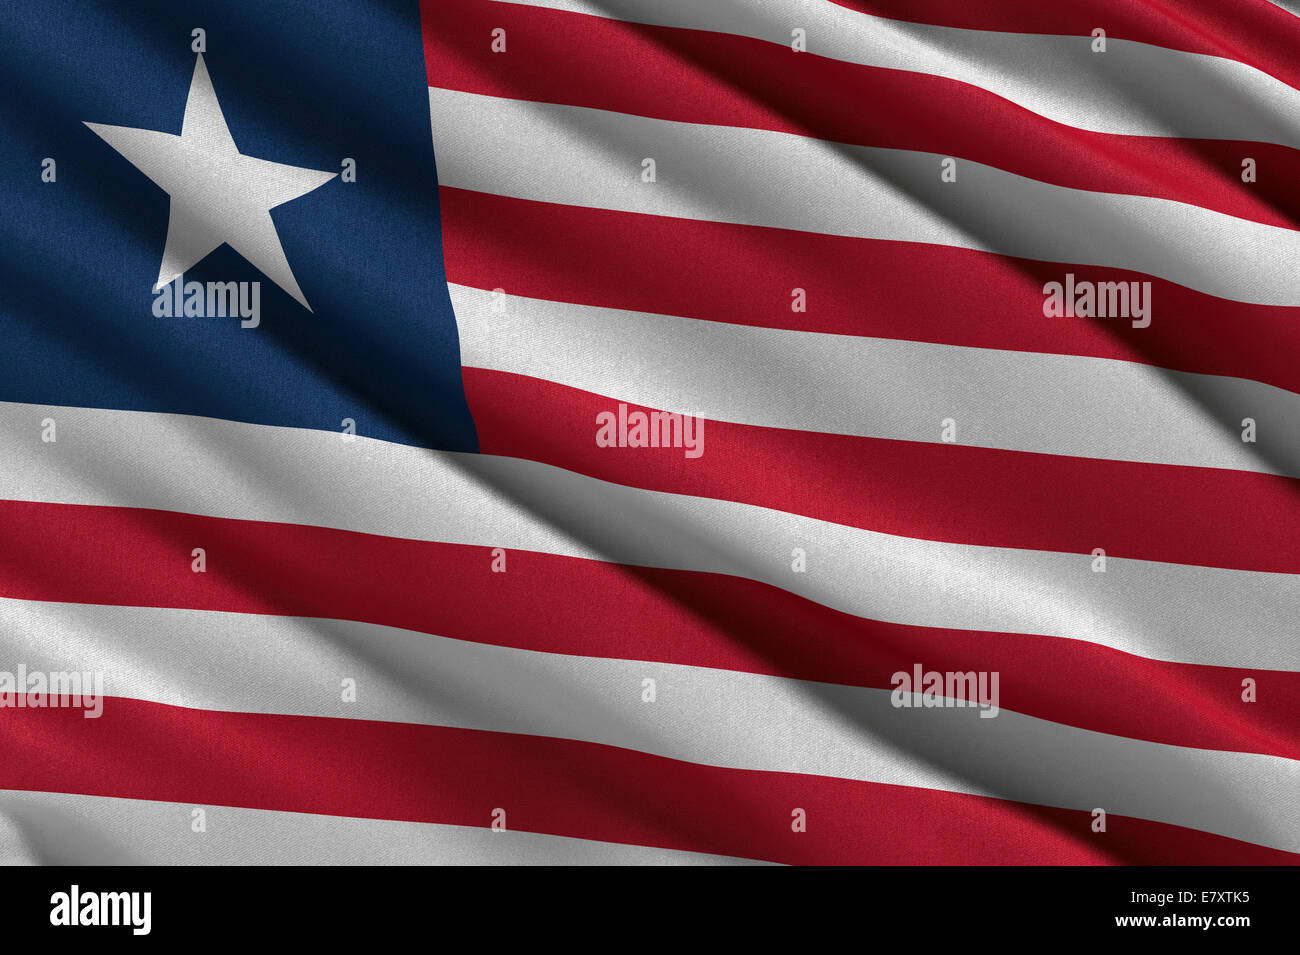 Flag of Liberia waving in the wind - Stock Image